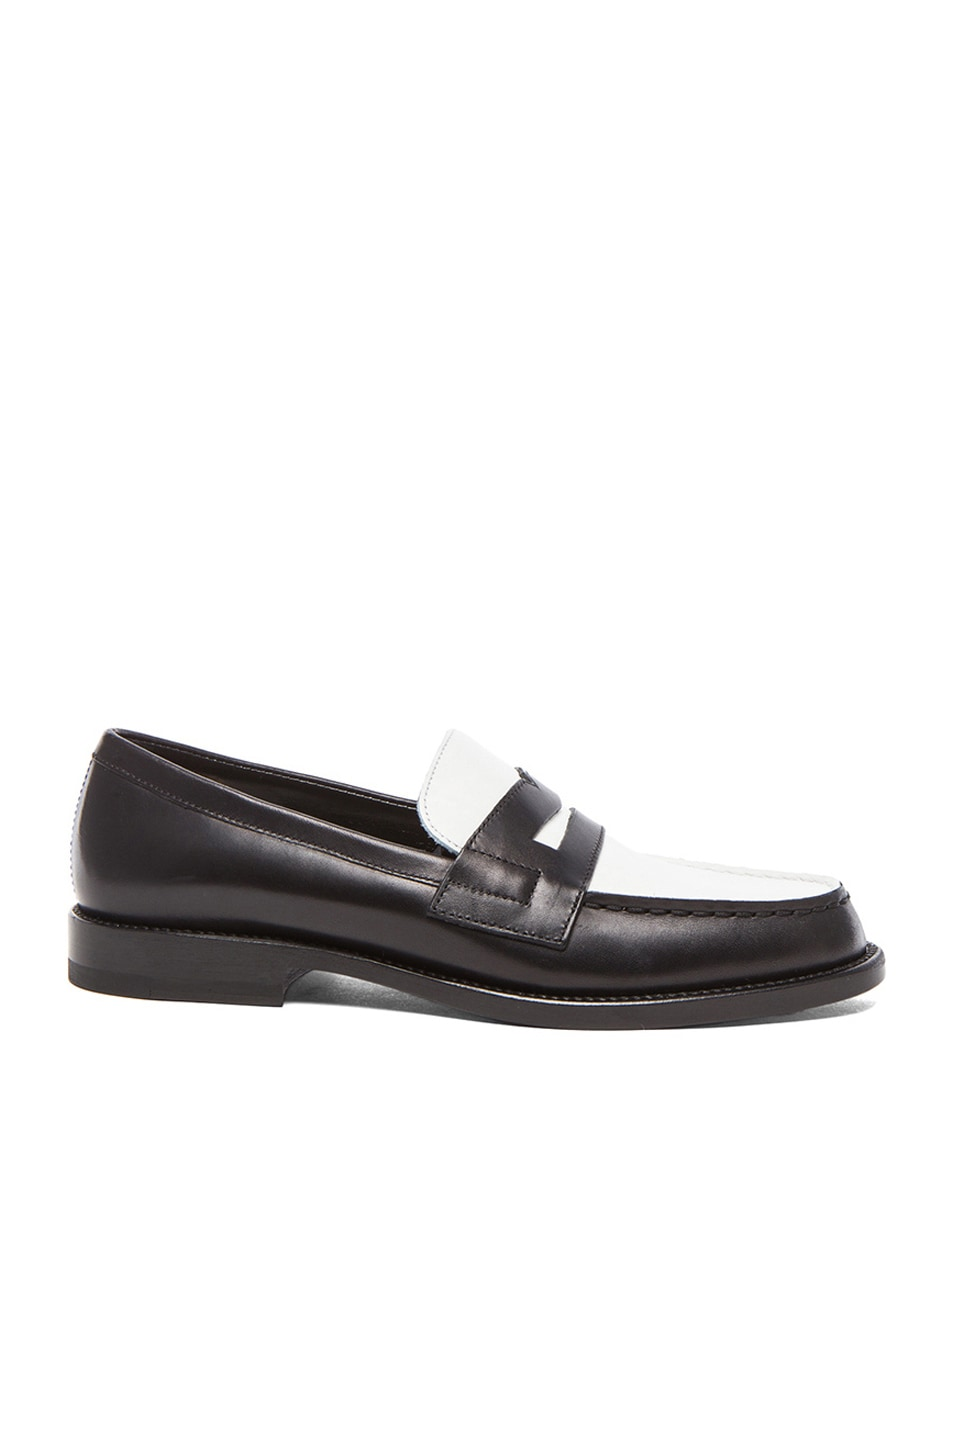 Image 1 of Saint Laurent Classic Loafer Leather Moccasins in Black & White